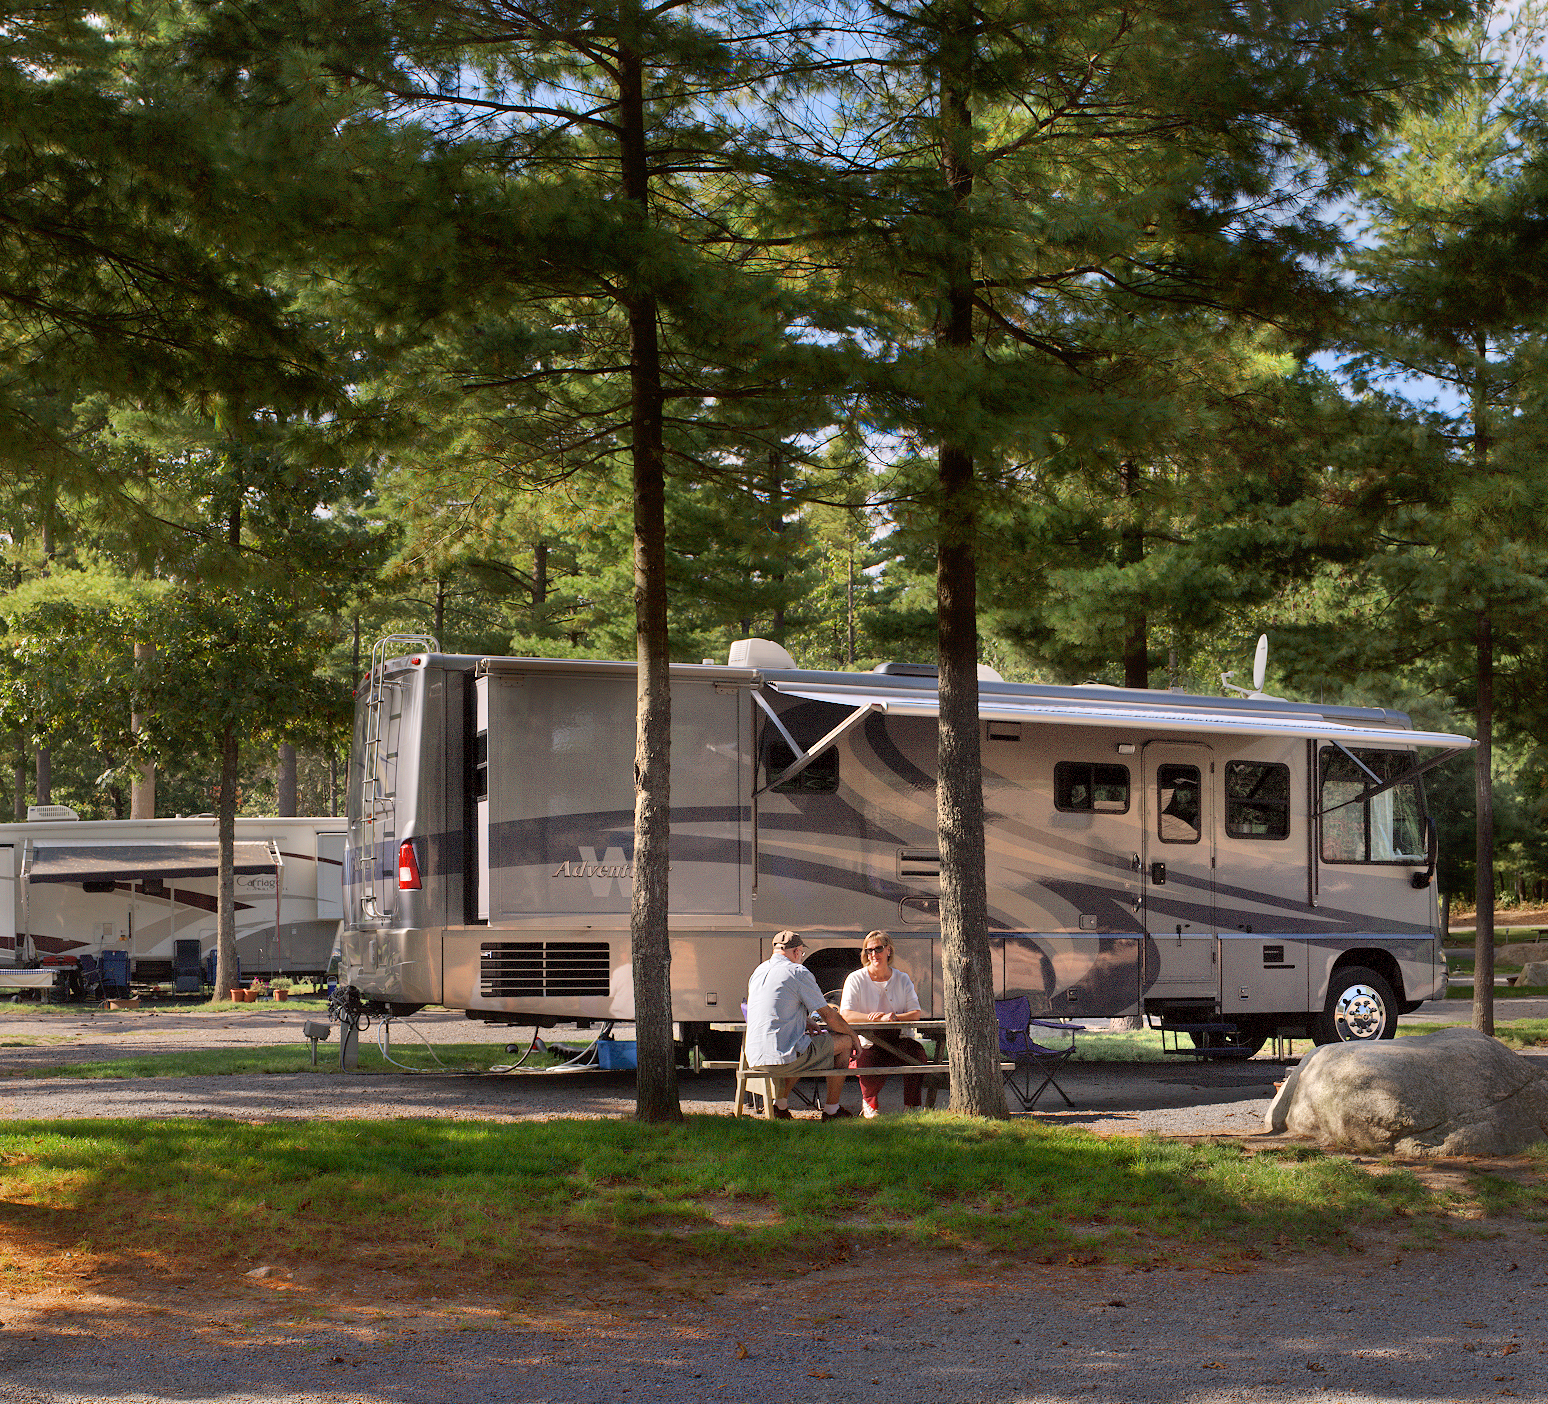 Motorhome parked under tall, shady pines.